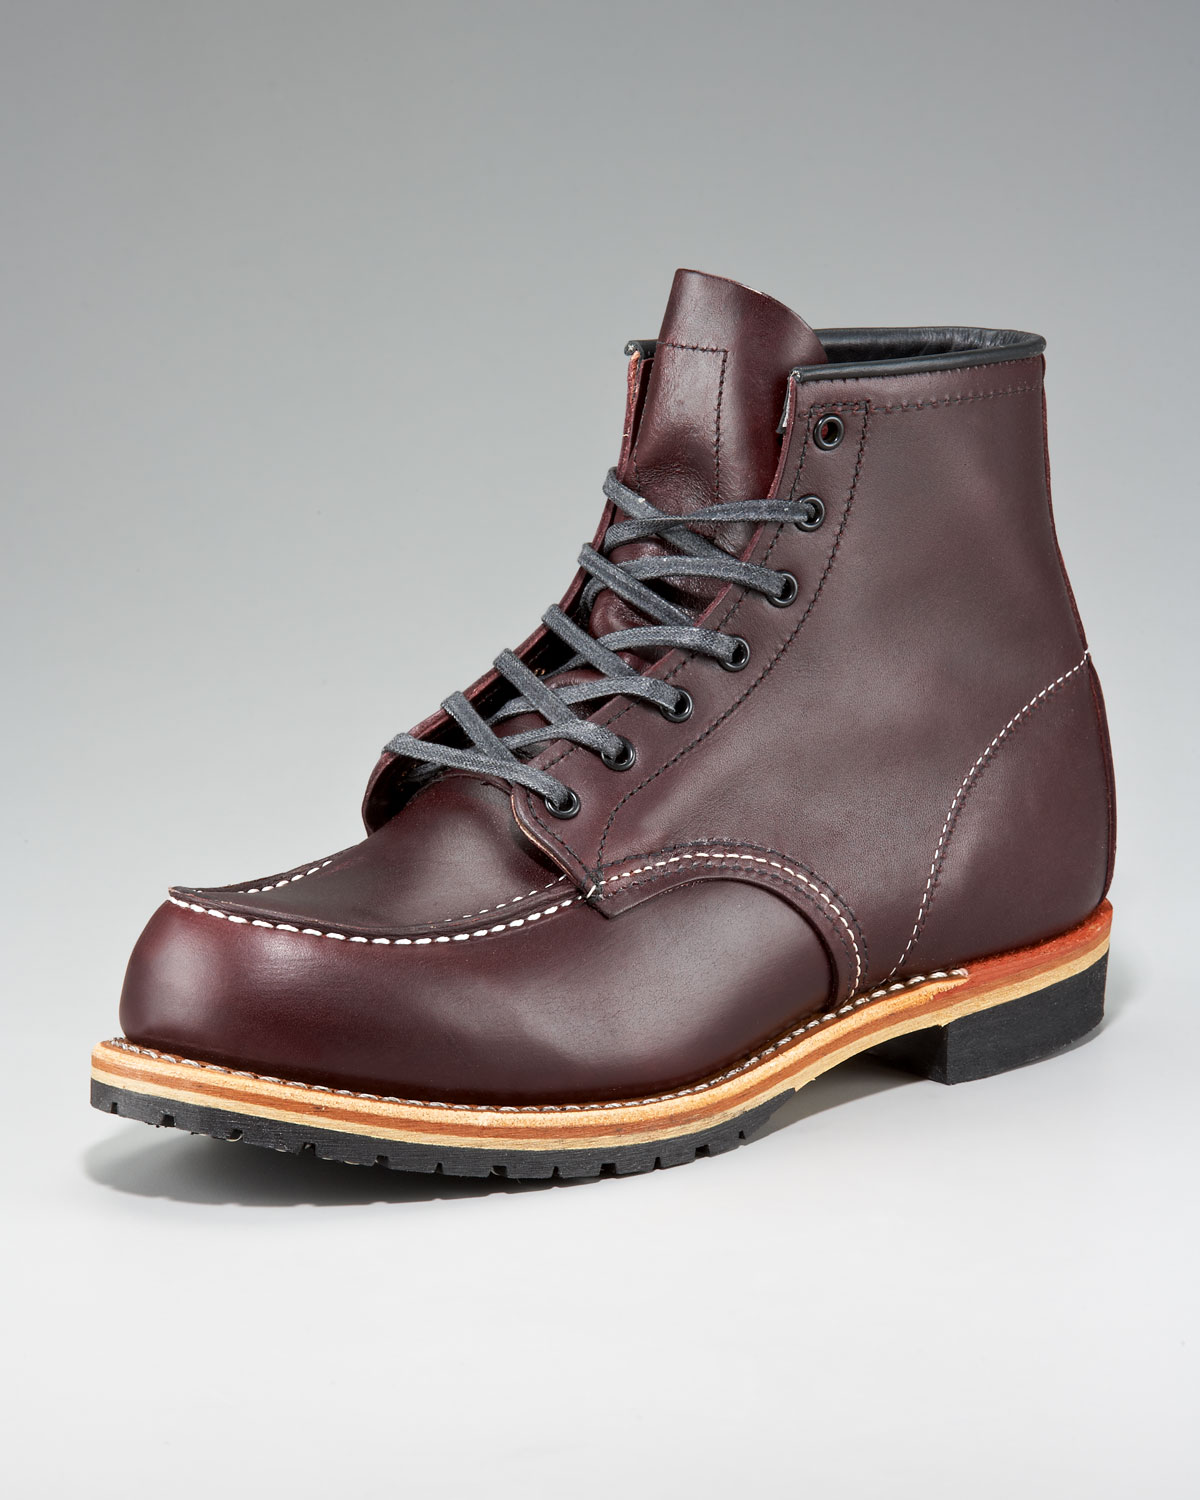 Red Wing Mens Boots buKWa8Zz